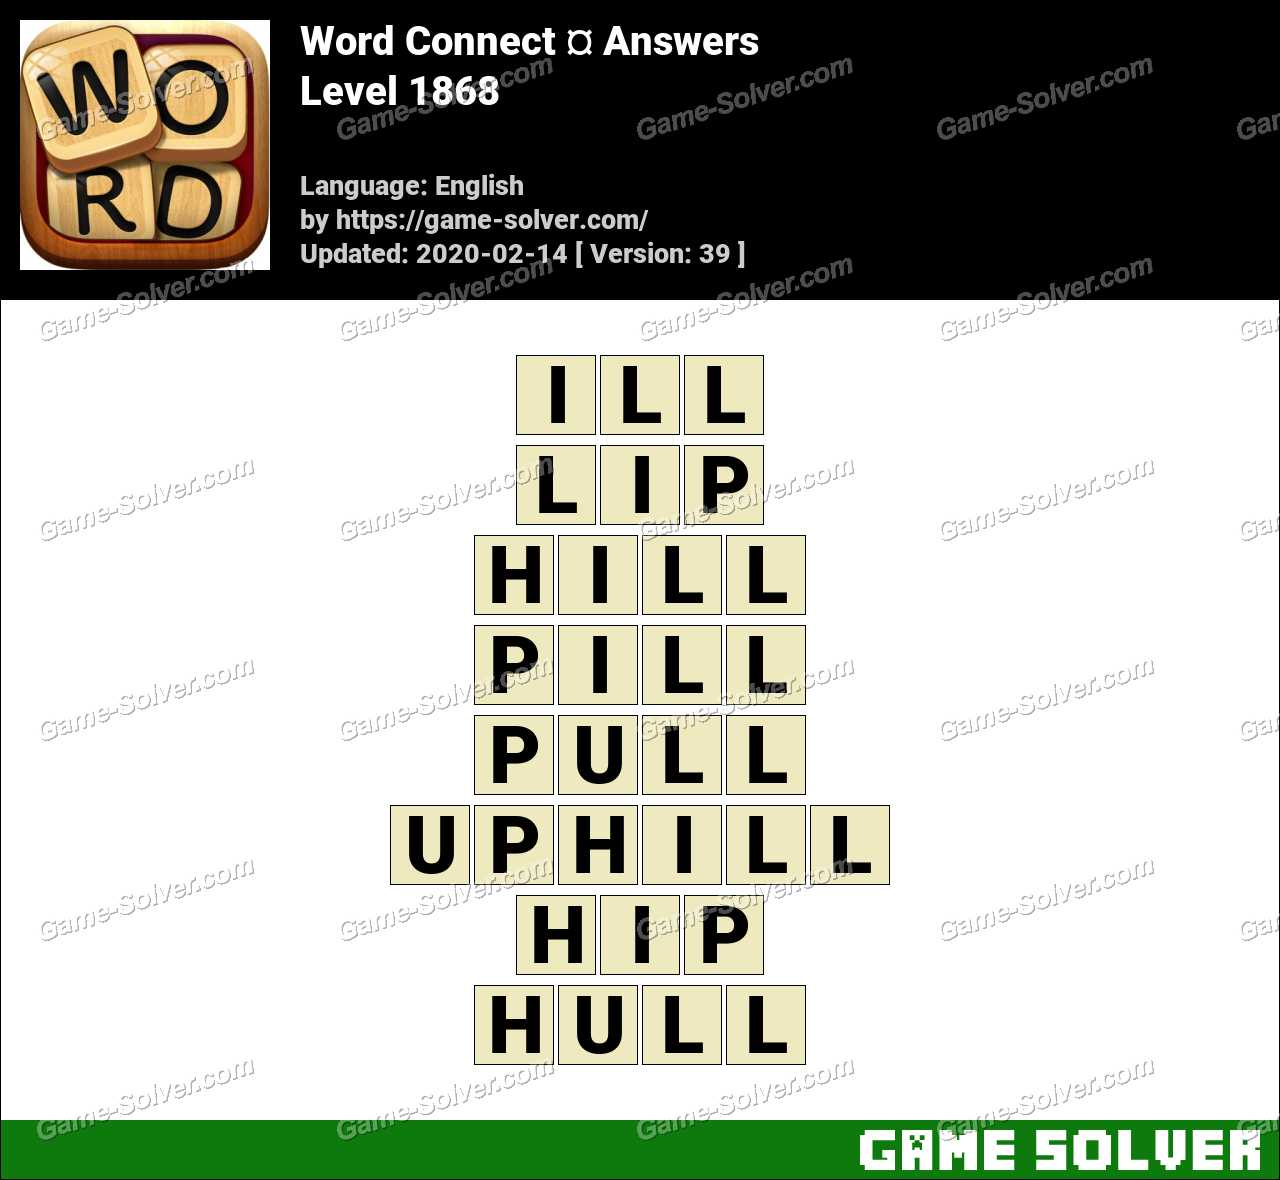 Word Connect Level 1868 Answers